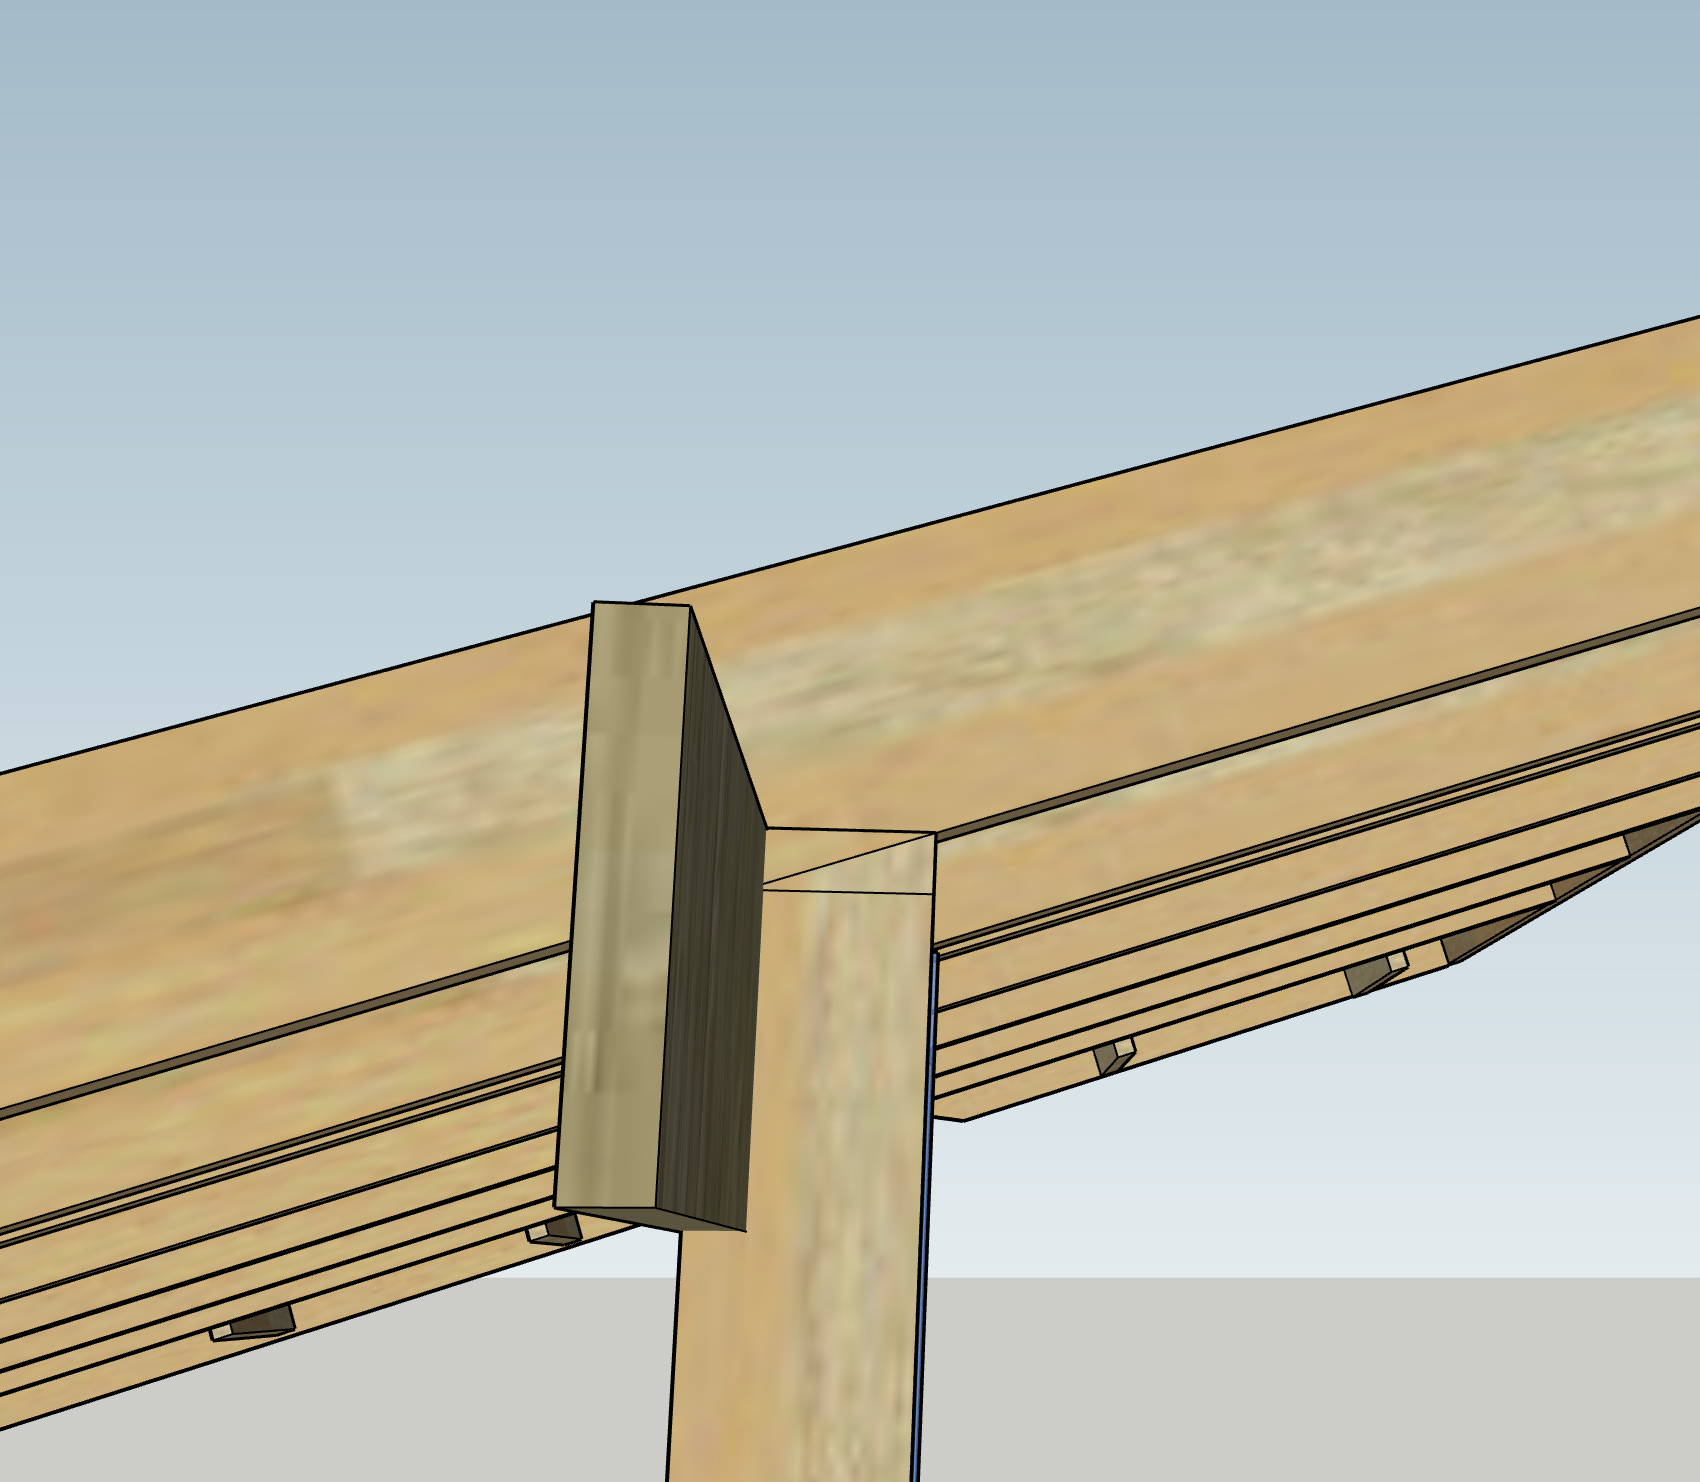 Shed / workshop framing design--is it too ambitious?-screen-shot-2020-04-27-2.33.00-pm.png